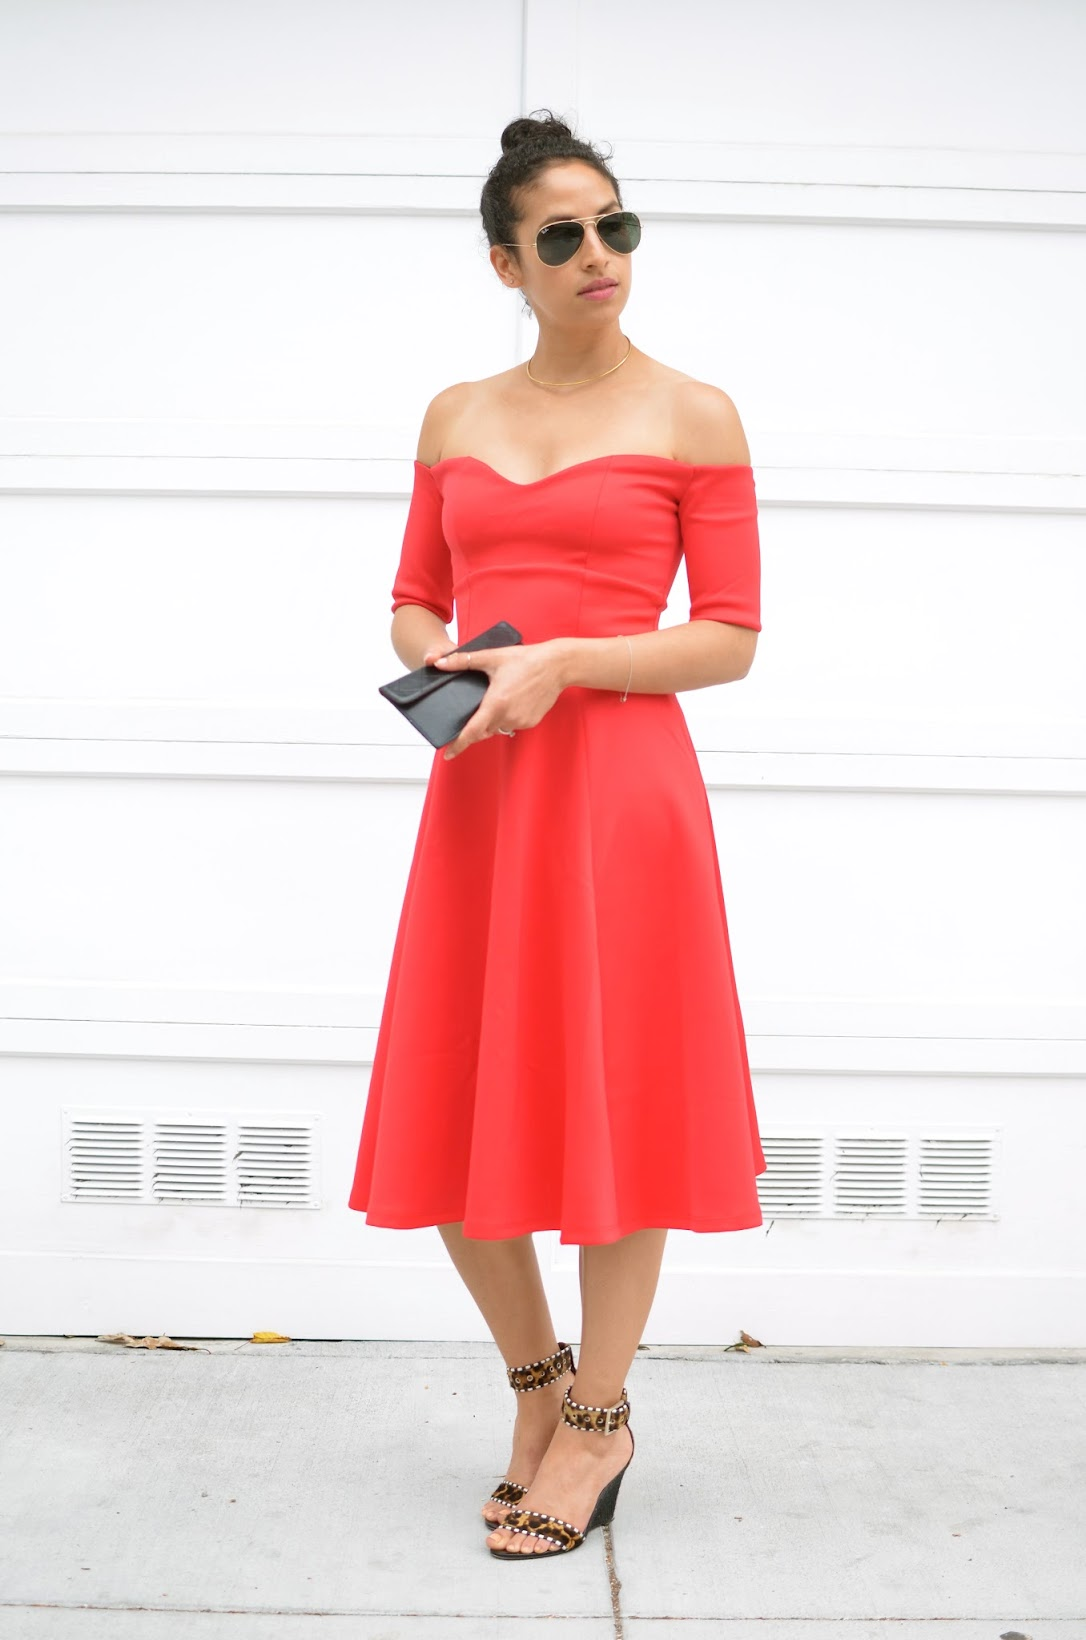 ASOS, Asos dress, Bardot dress, off the shoulder dress, Brian Atwood wedges, aviator sunglasses